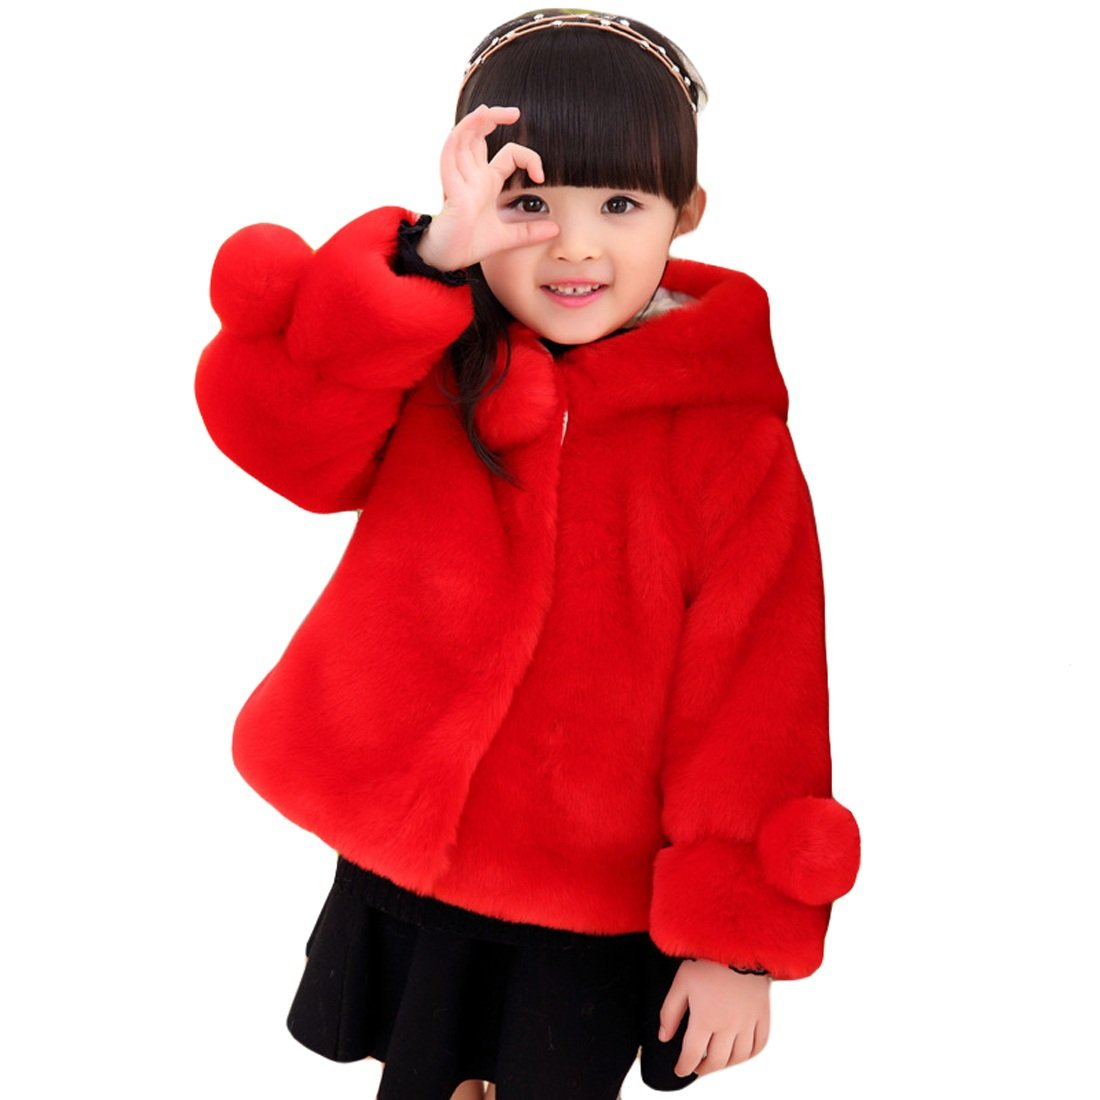 Girls Faux Fur Jacket Hooded Cloak Coat Thick Warm Winter Outerwear for 1-8 Years Kids